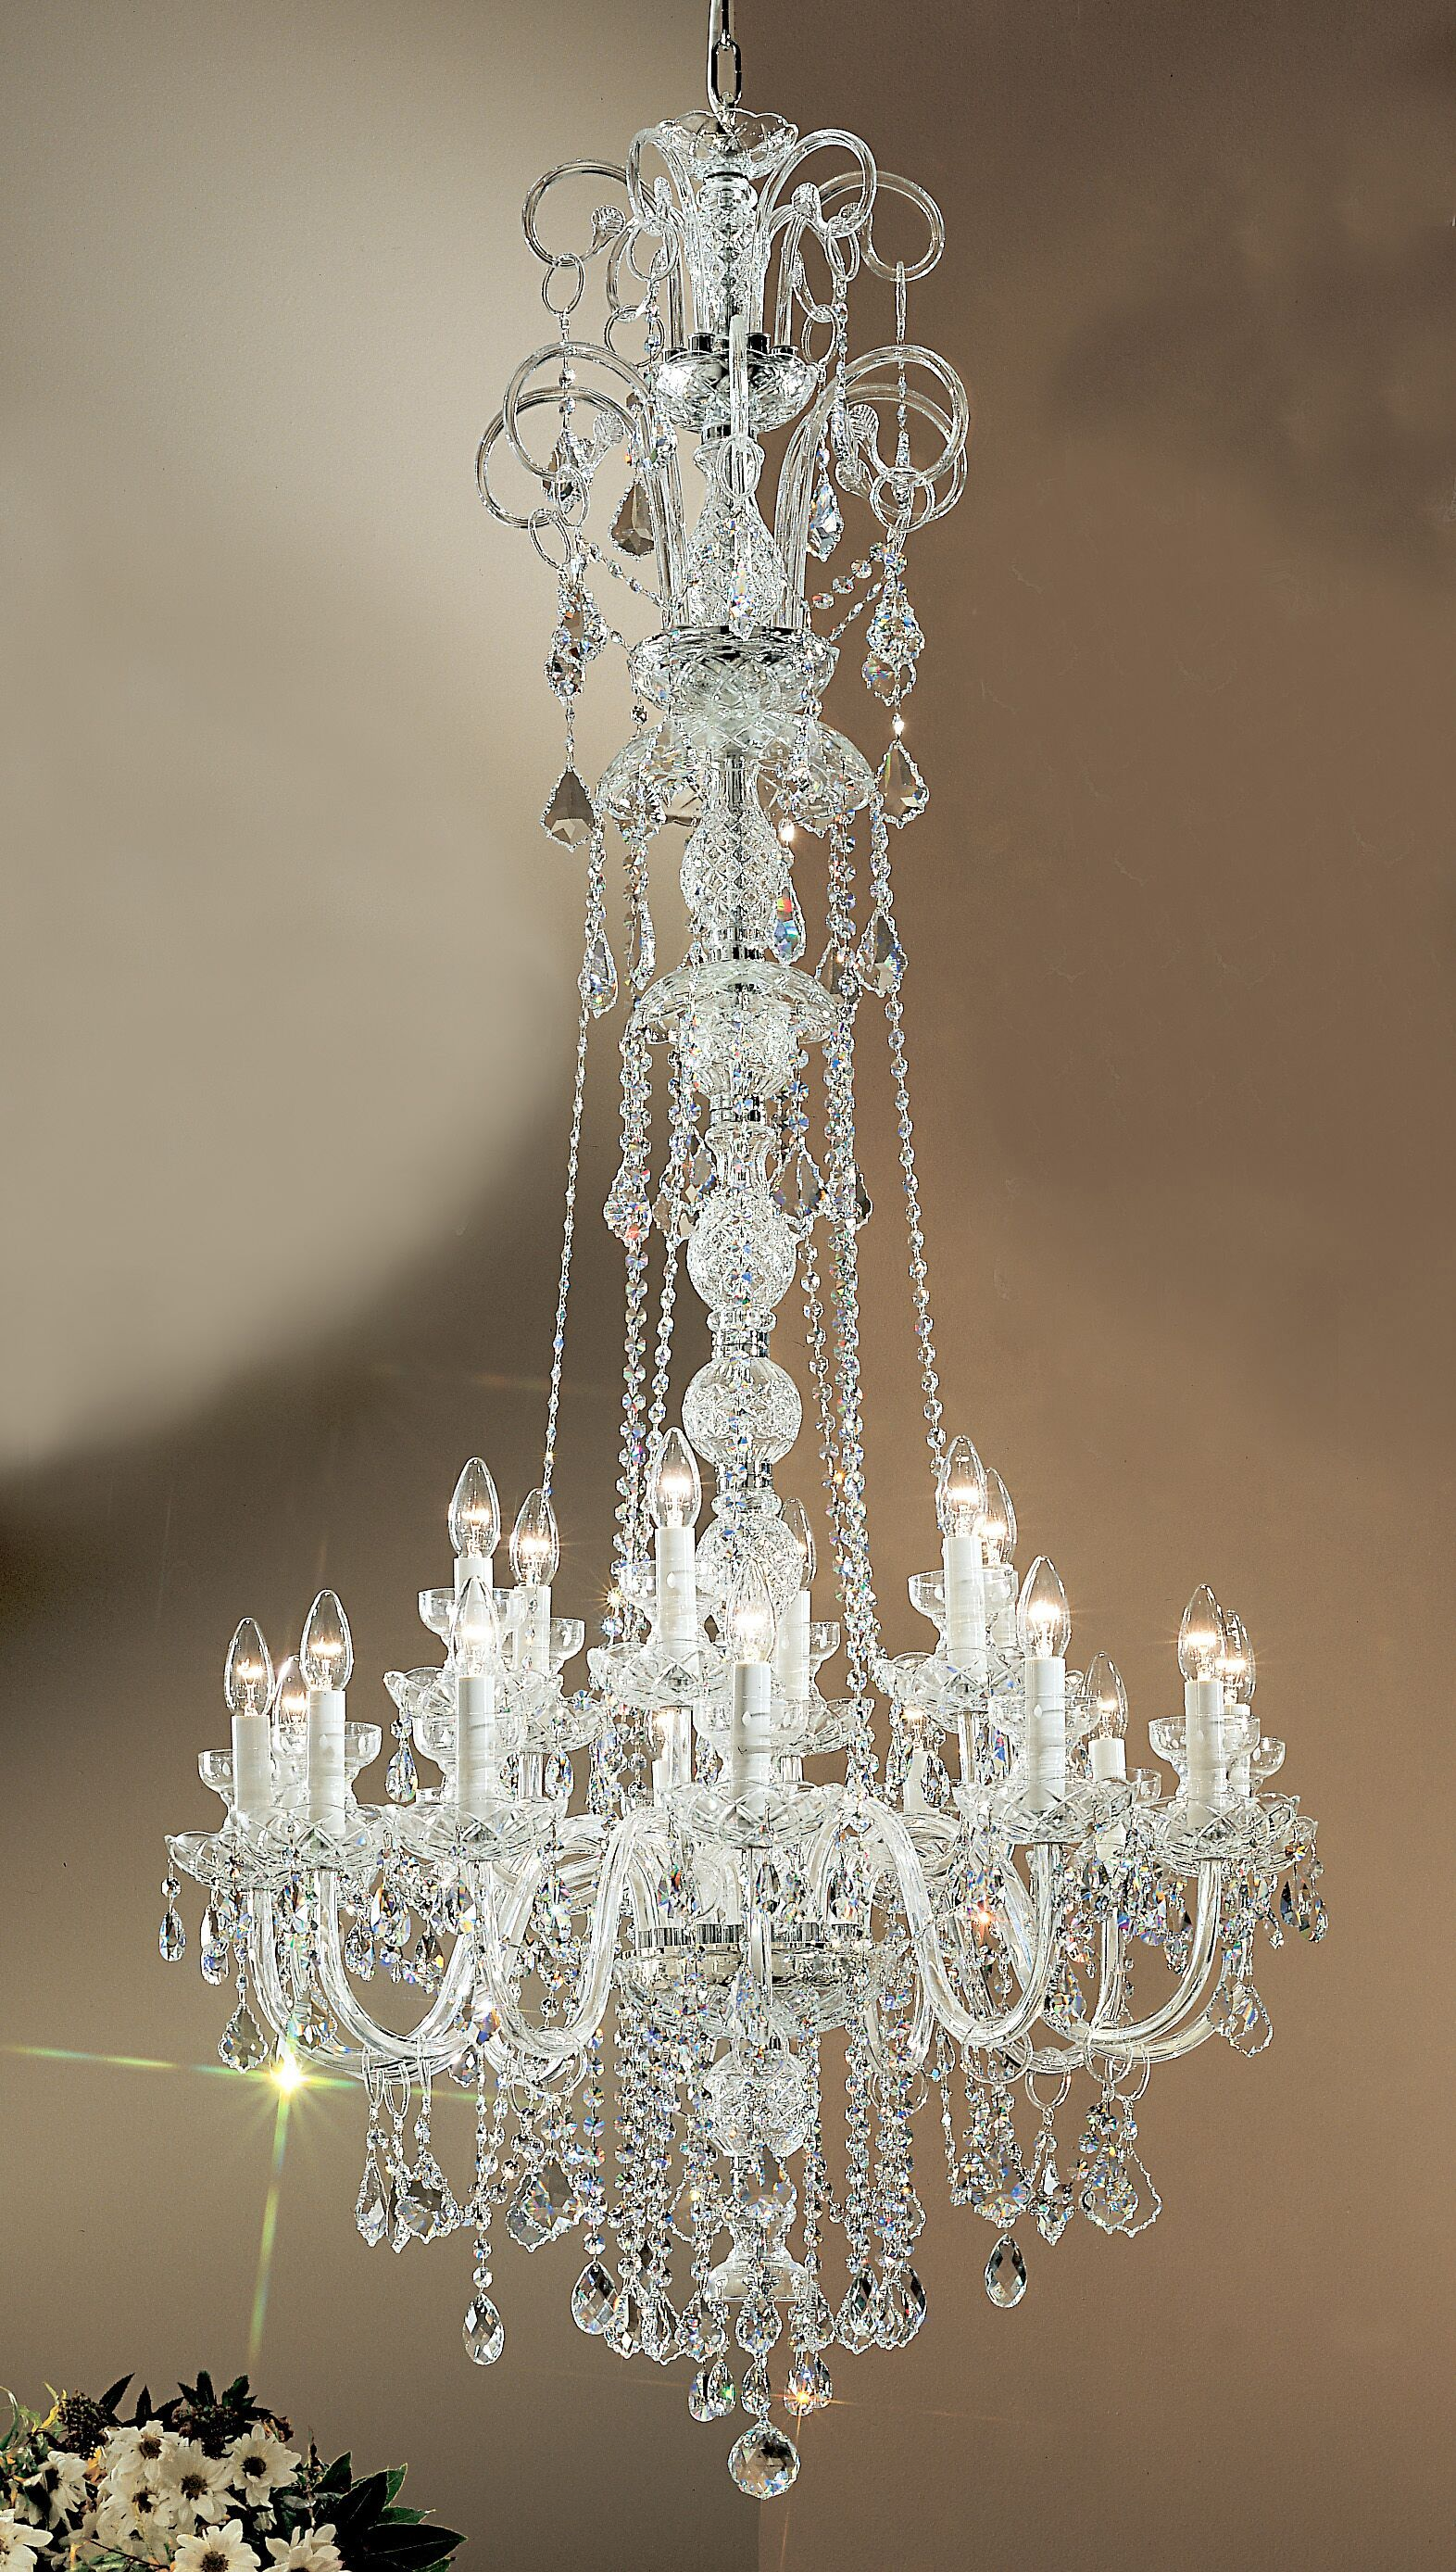 Bohemia 18-Light Candle Style Chandelier Crystal Type: Crystalique, Finish: 24K Gold Plate, Size: 65